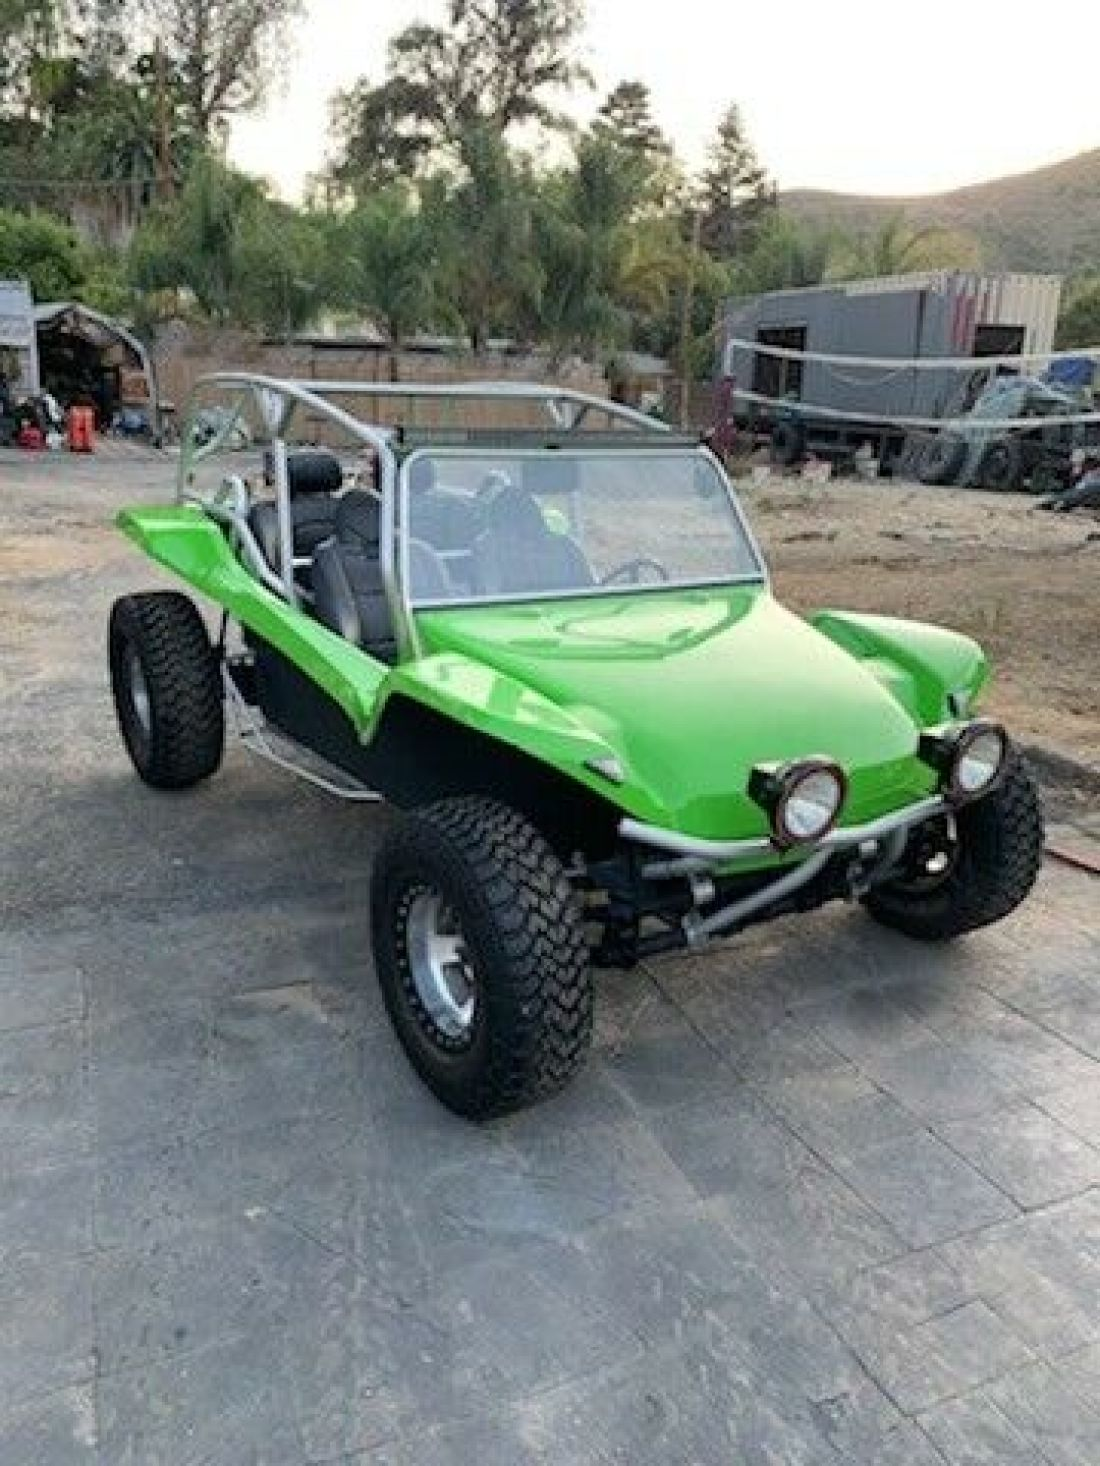 1969 Vw Manx Dune Buggy For Sale Volkswagen Beetle Classic 1969 For Sale In Laguna Beach California United States